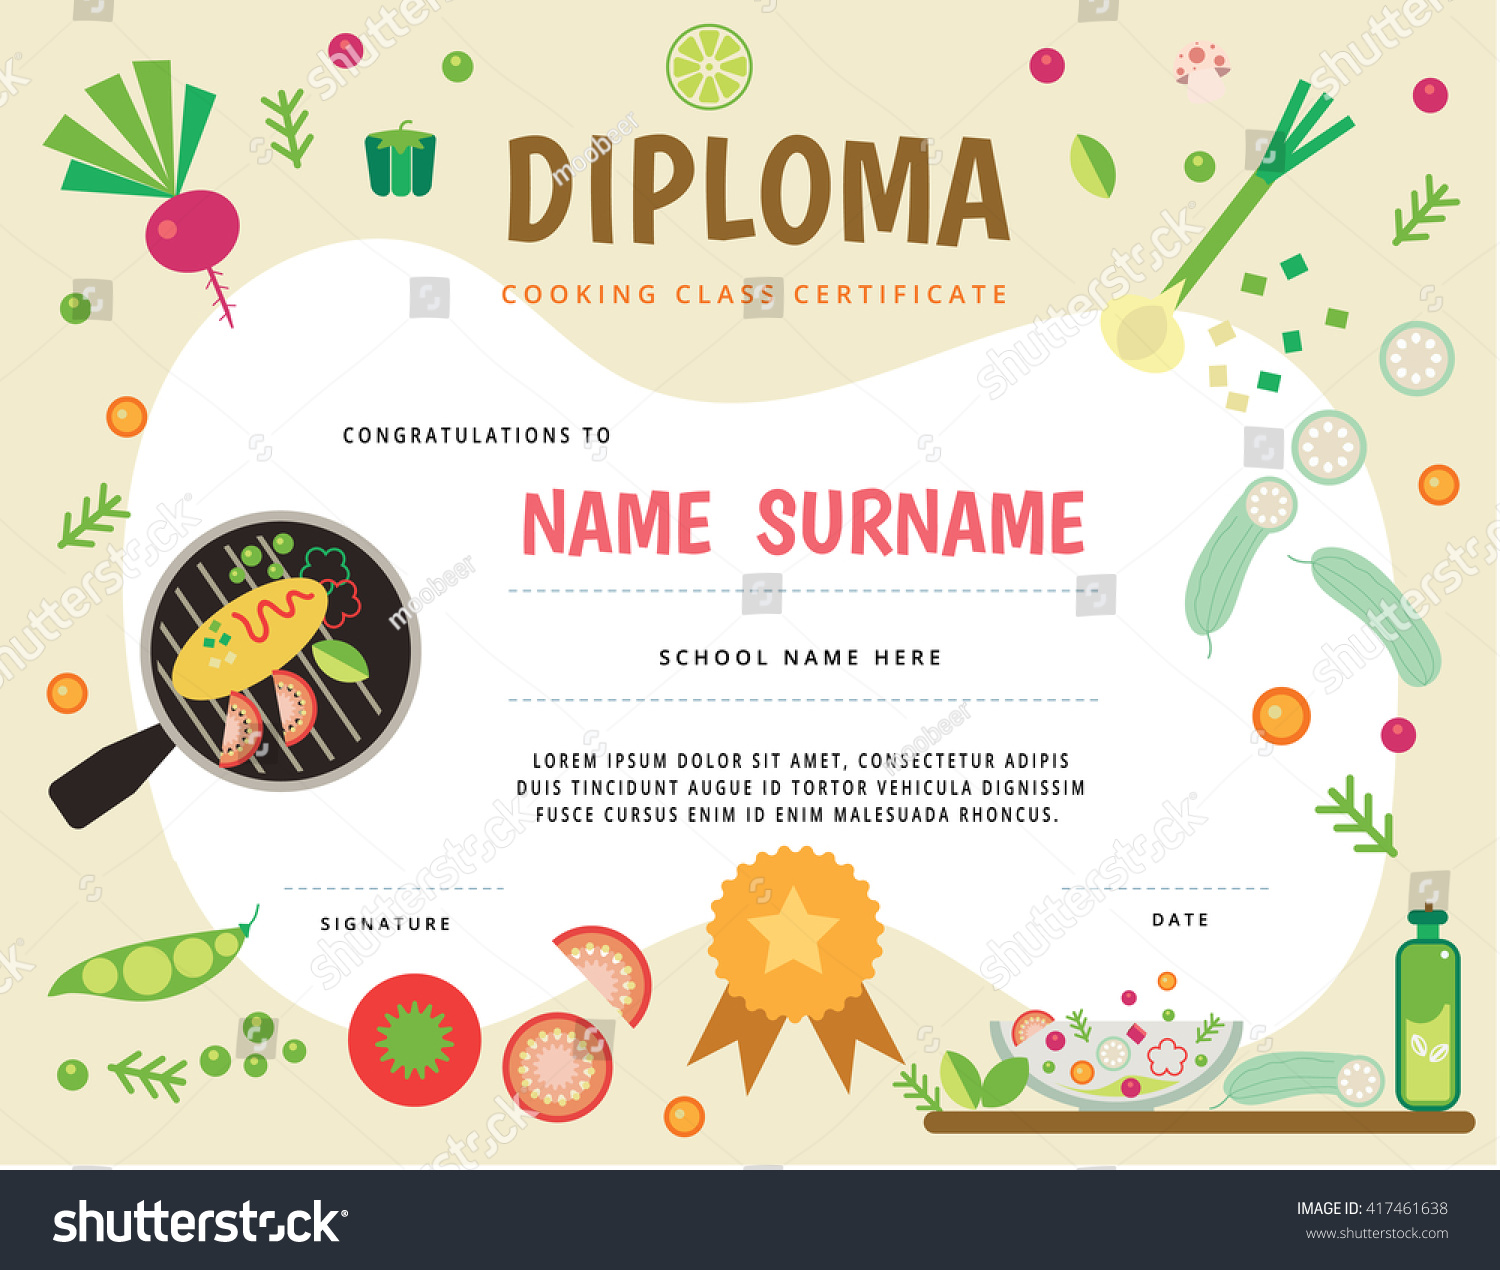 Cooking school kids diploma certificate stock vector 417461638 cooking school kids diploma certificate alramifo Image collections